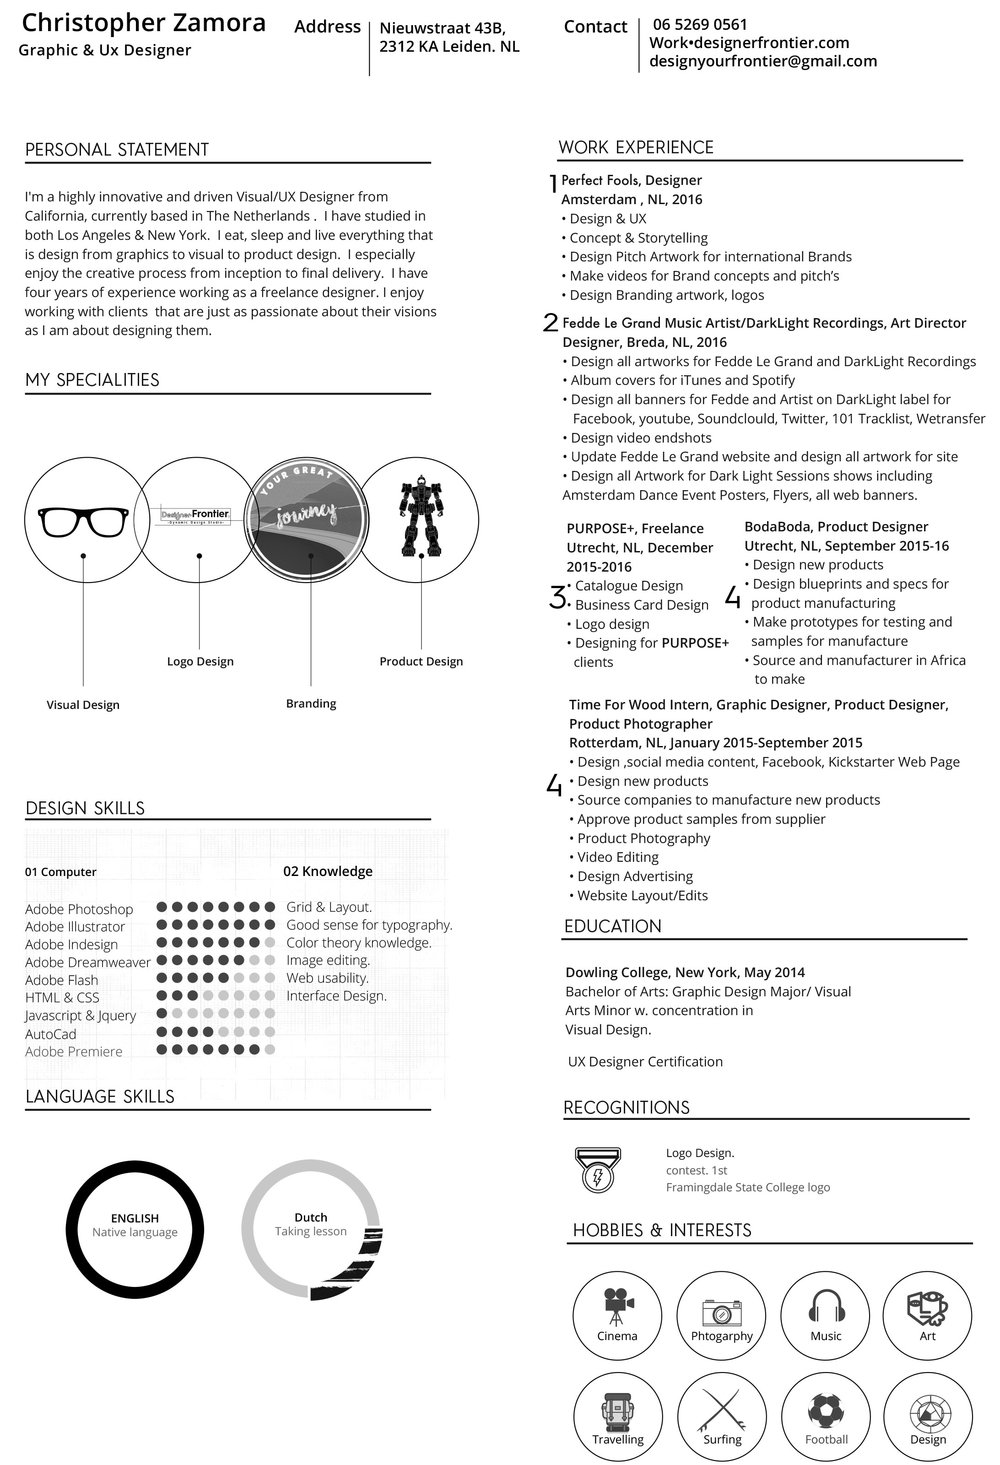 Christopher-Zamora-Design-Resume-x.jpg